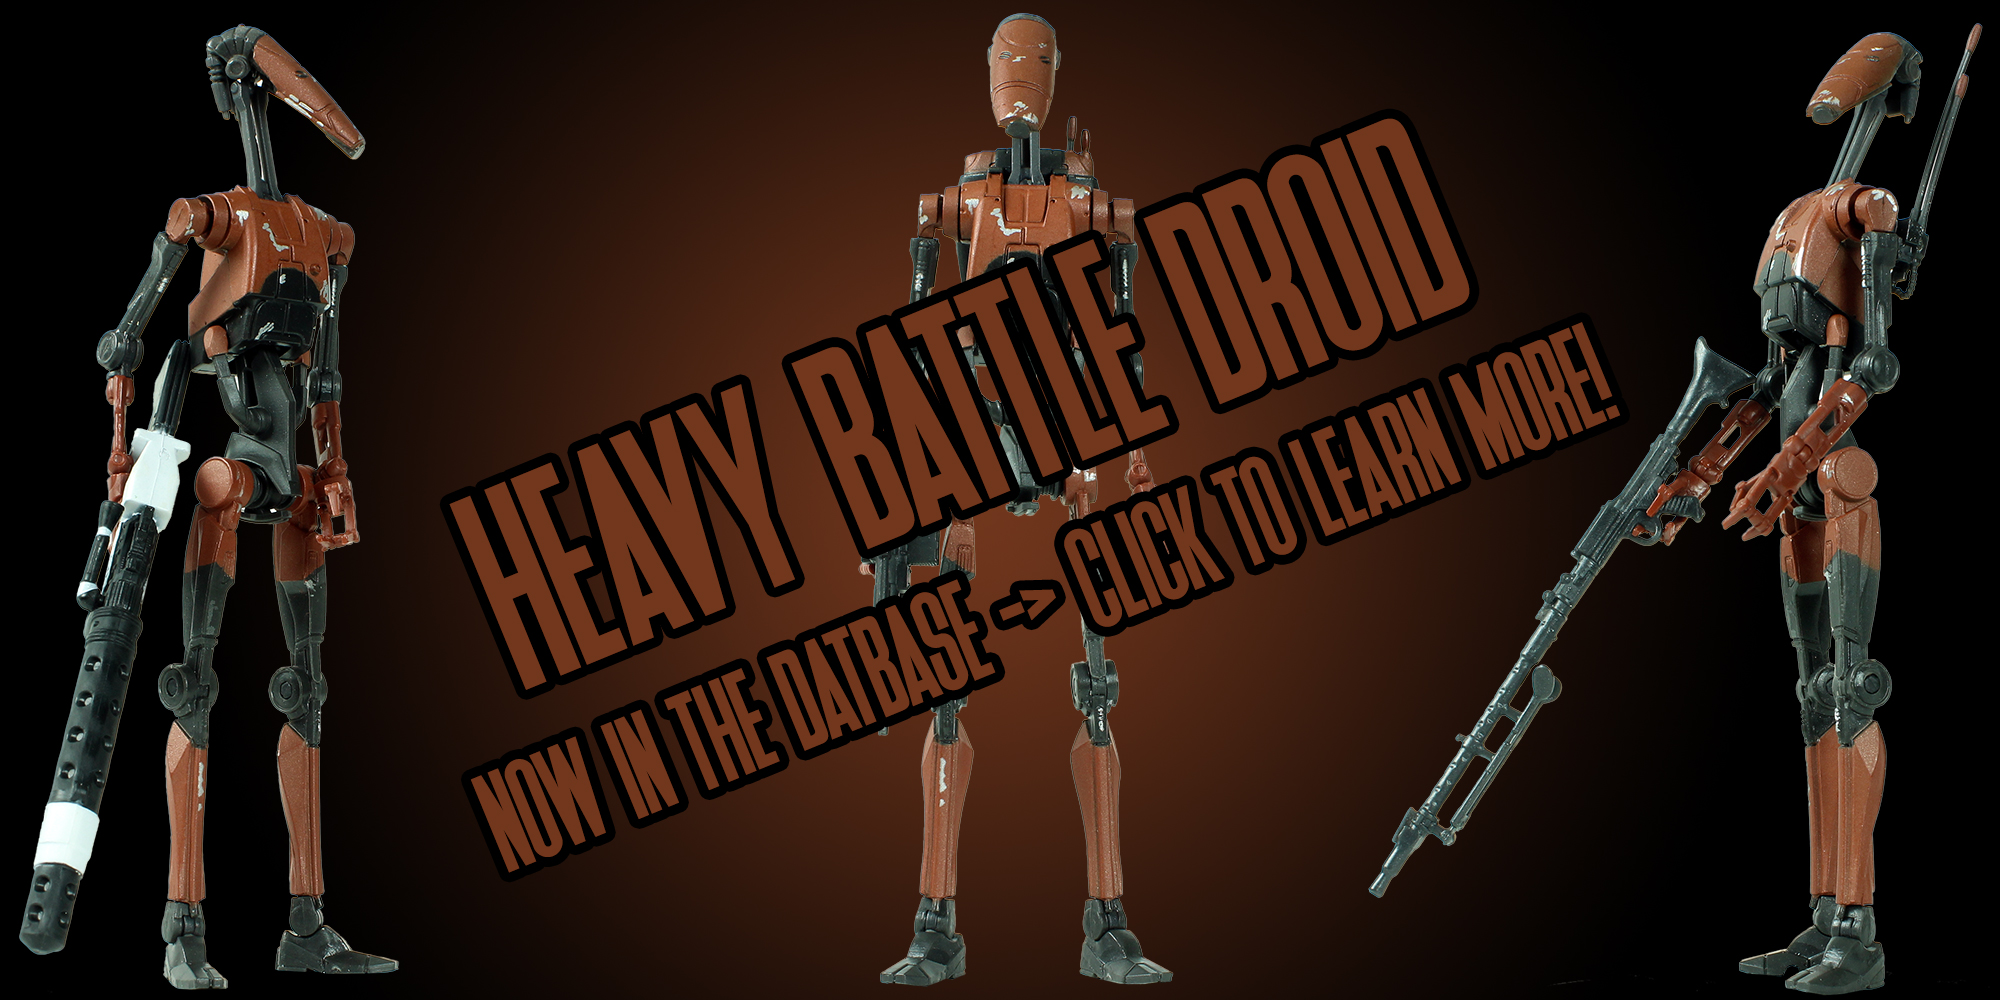 Heavy Battle Droid